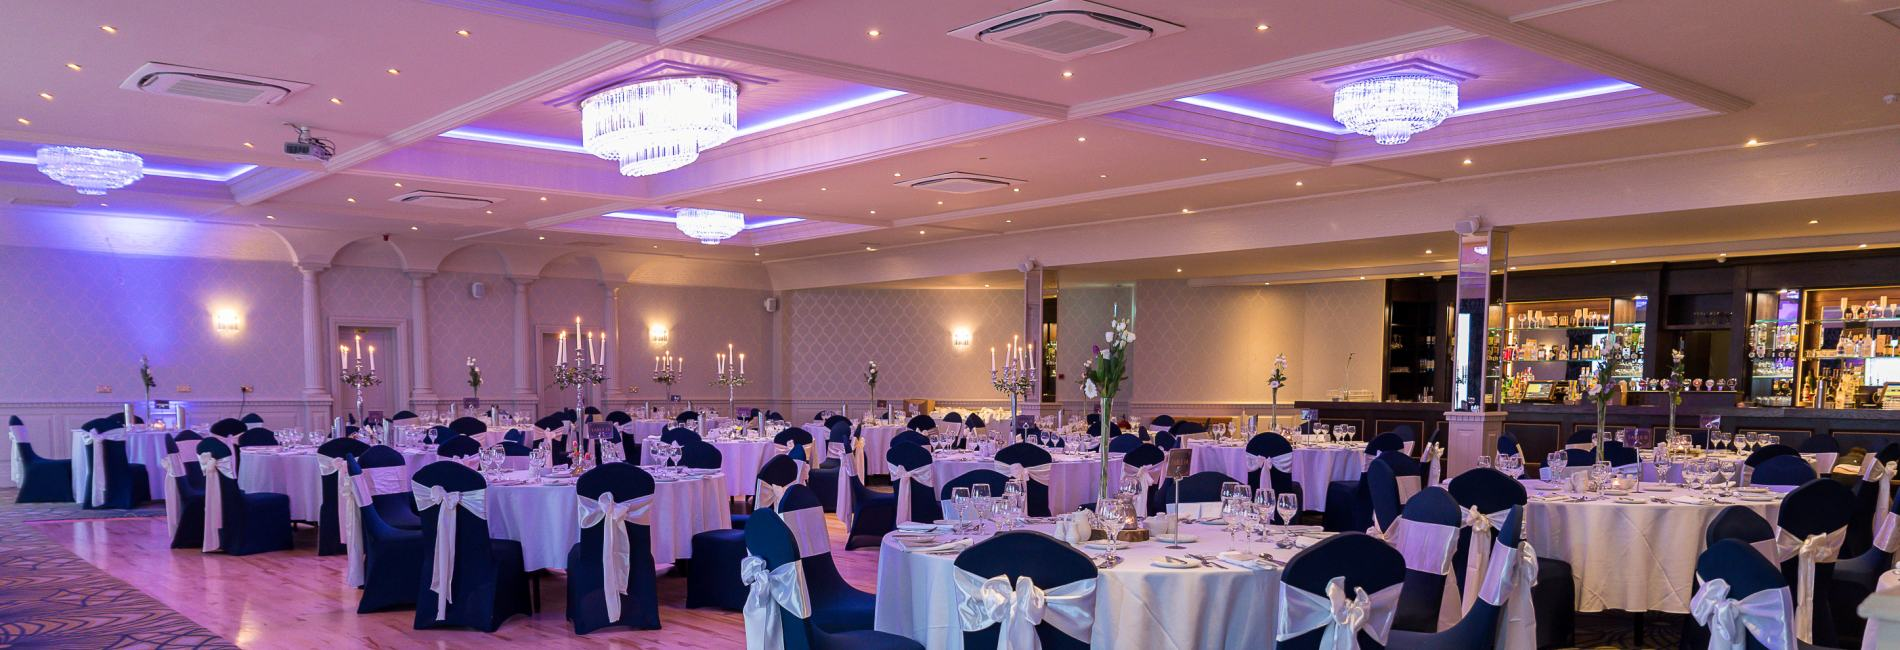 Arklow Bay Hotel Large Wedding Venue Wicklow